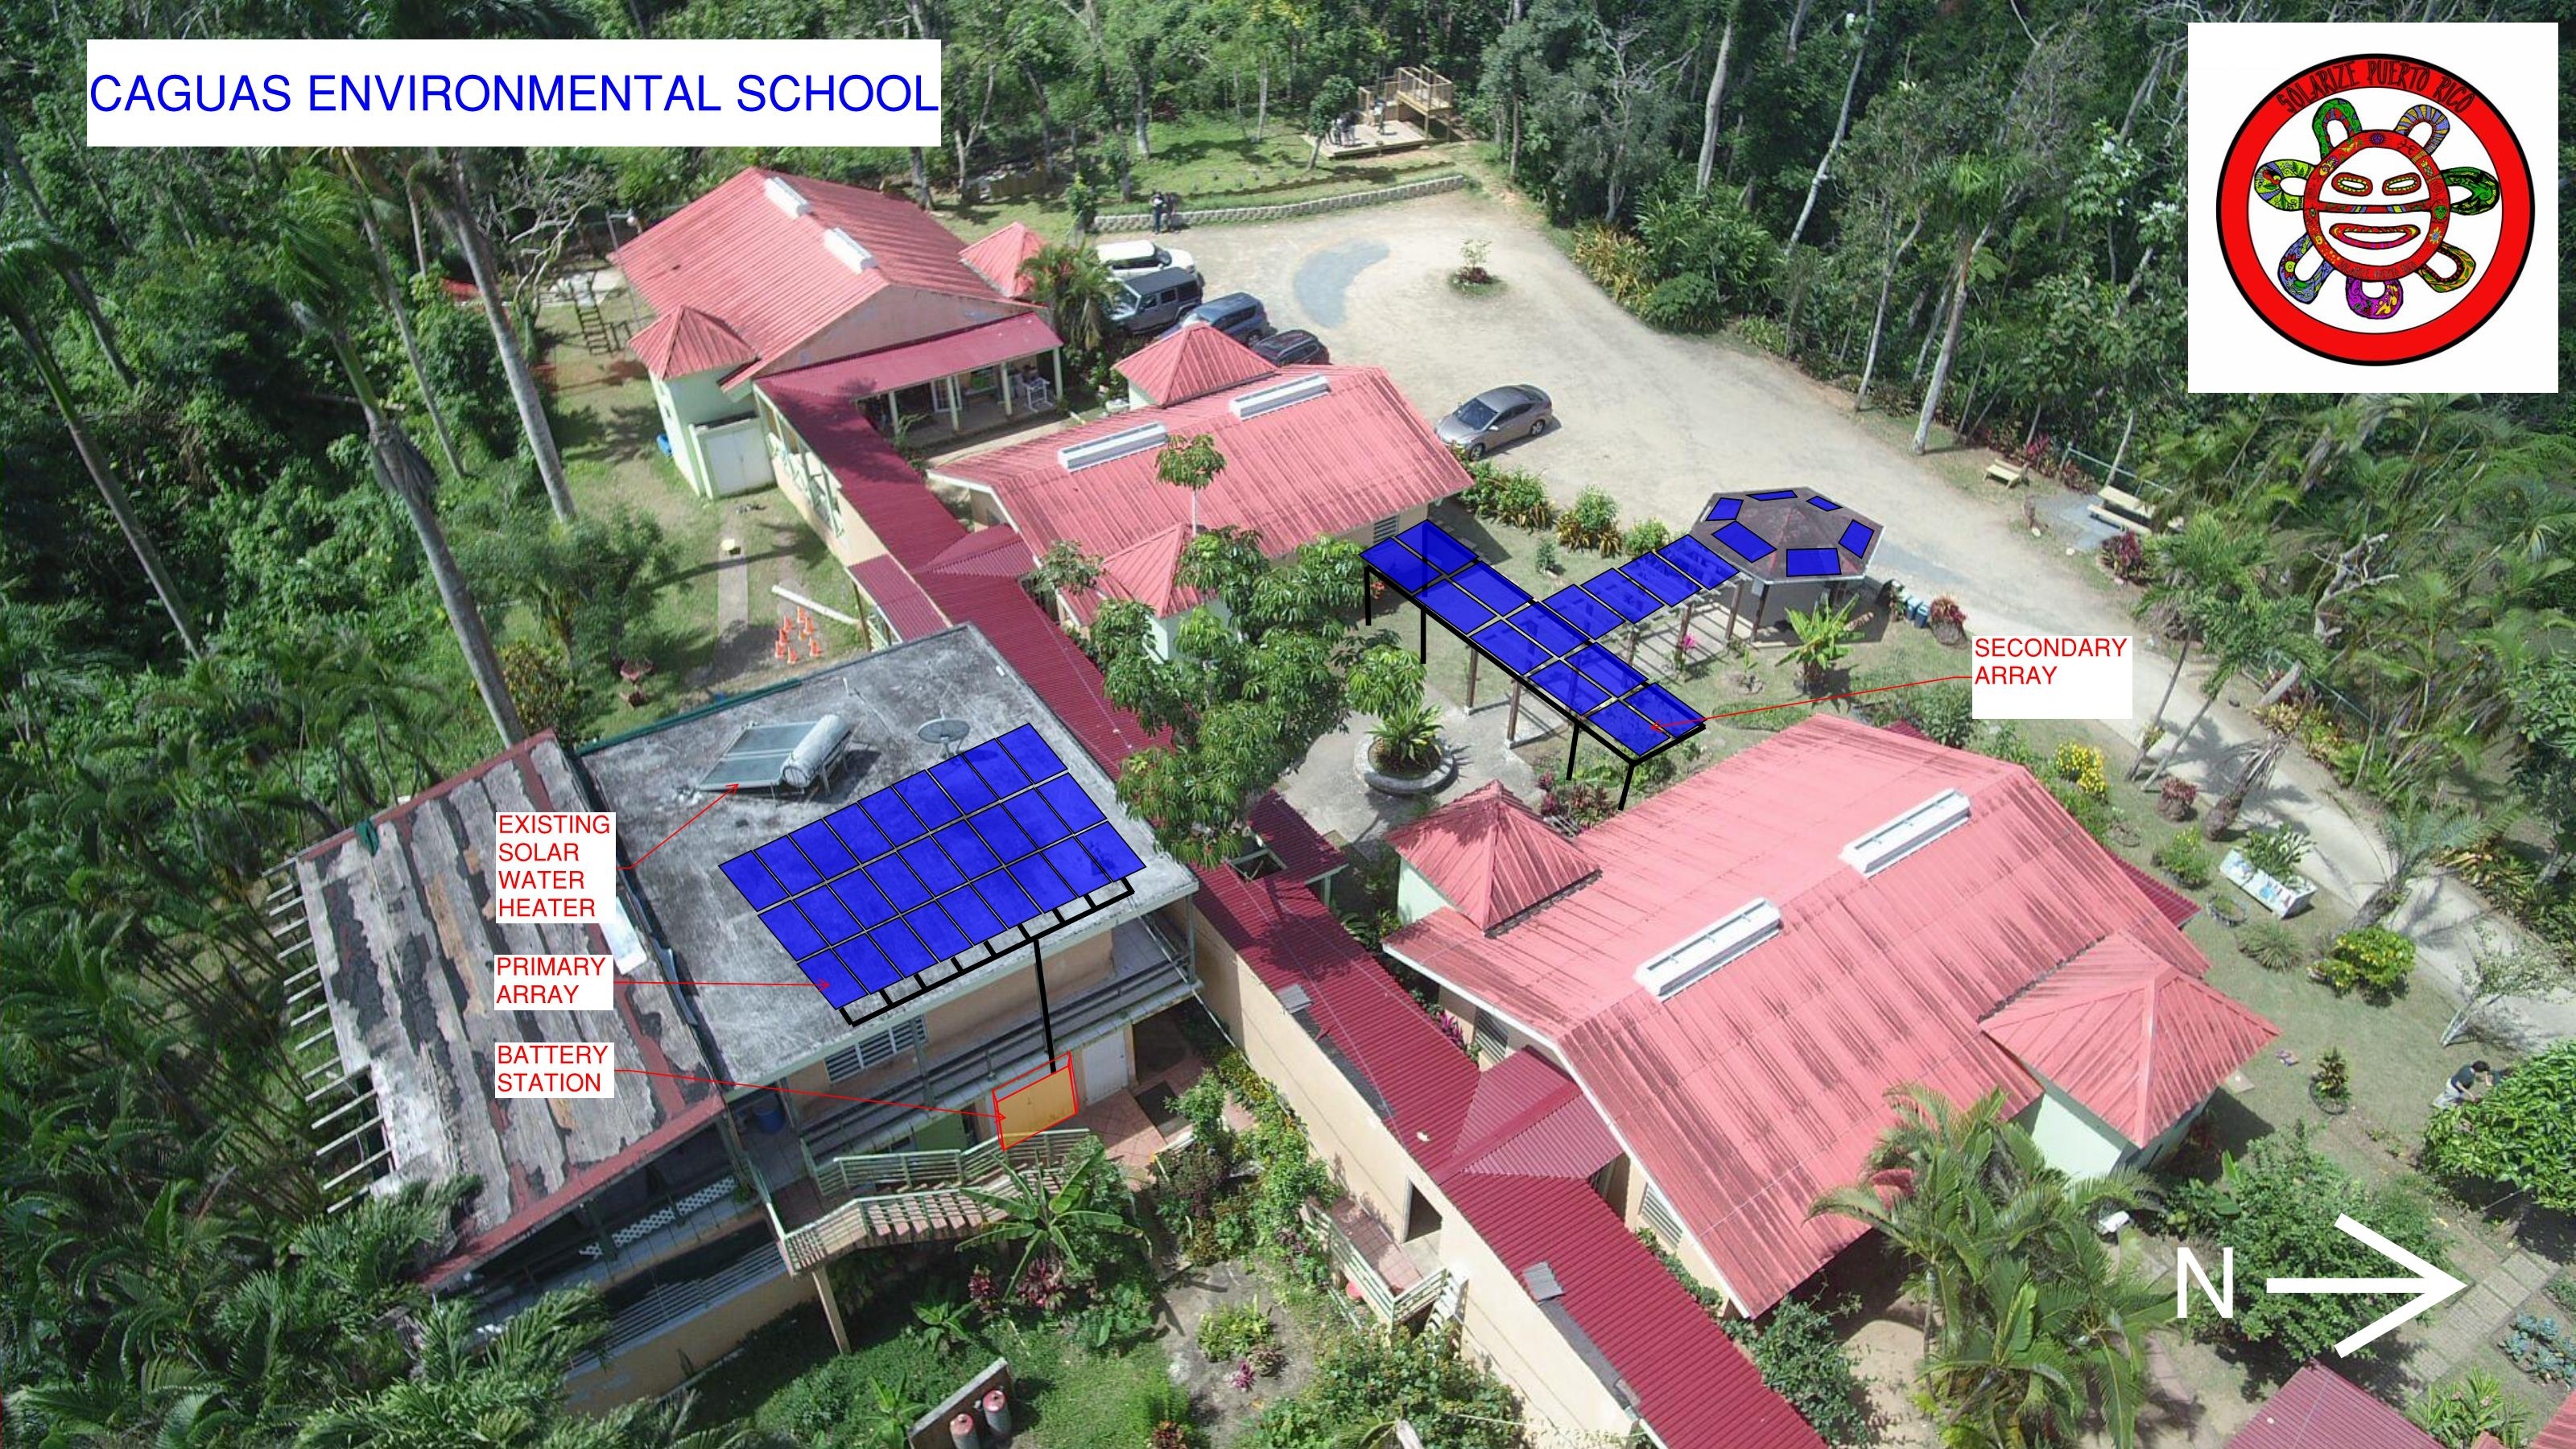 A rendering showing where the solar panels will be located on the school's roof.